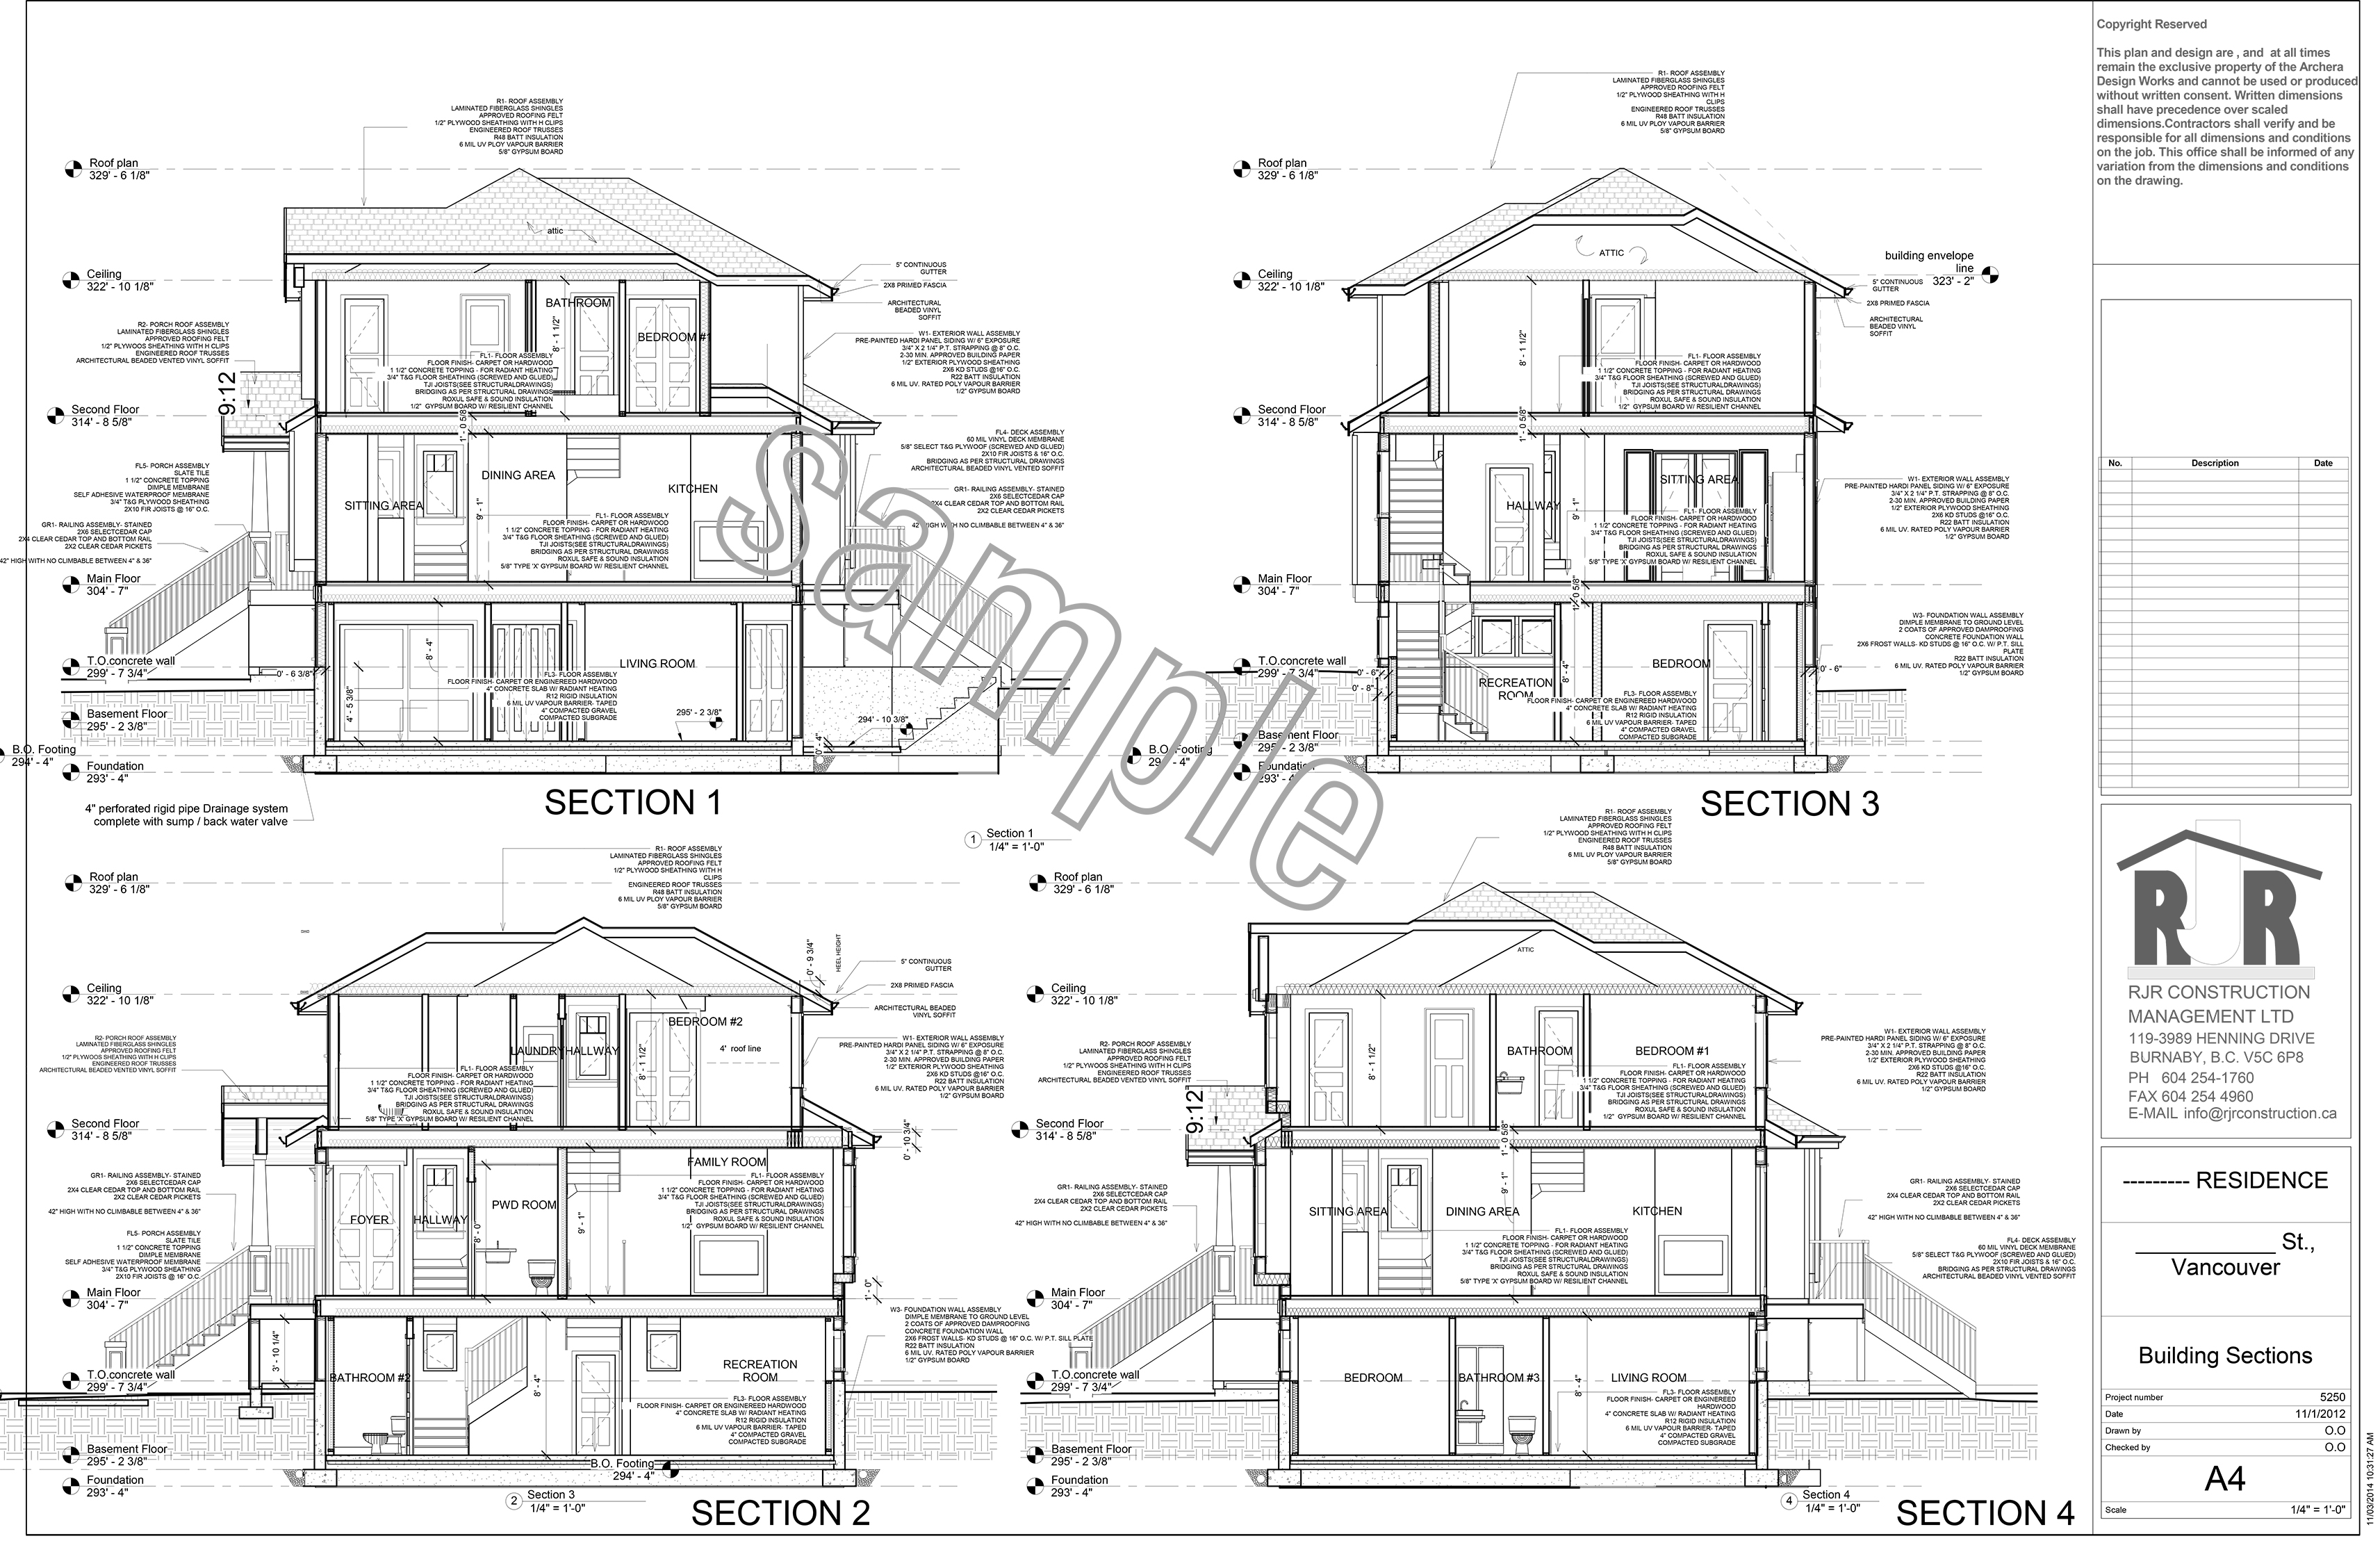 Sample drawings rjr construction group vancouver for Construction plan drawing